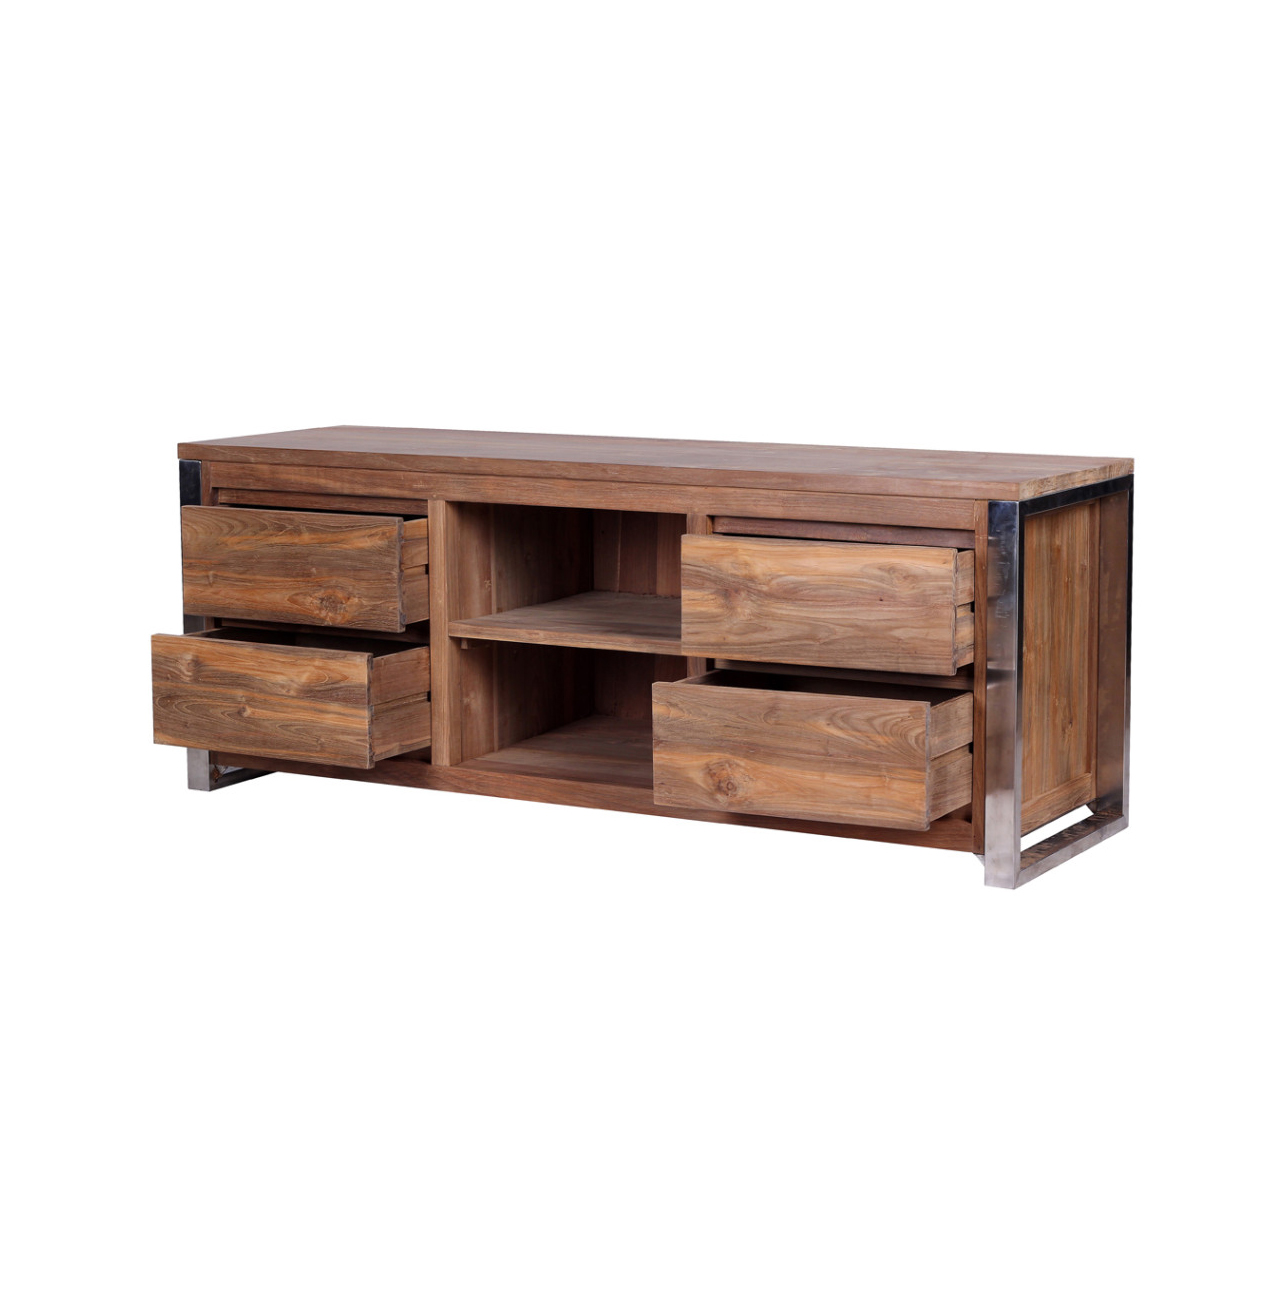 Rarem Reclaimed Wood TV Stand